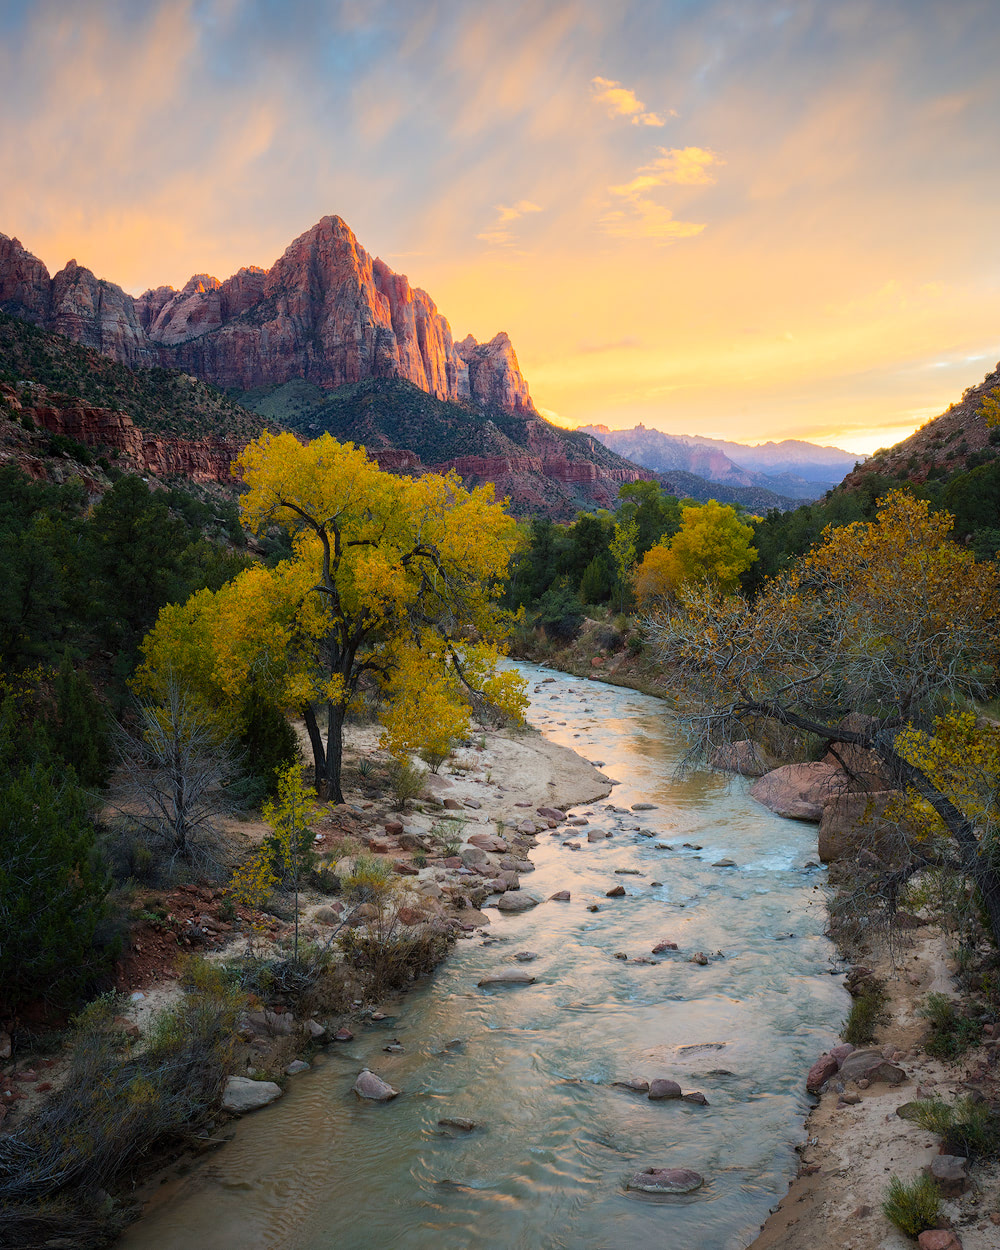 The Ultimate Guide to Exploring Zion National Park - The Watchman Photography